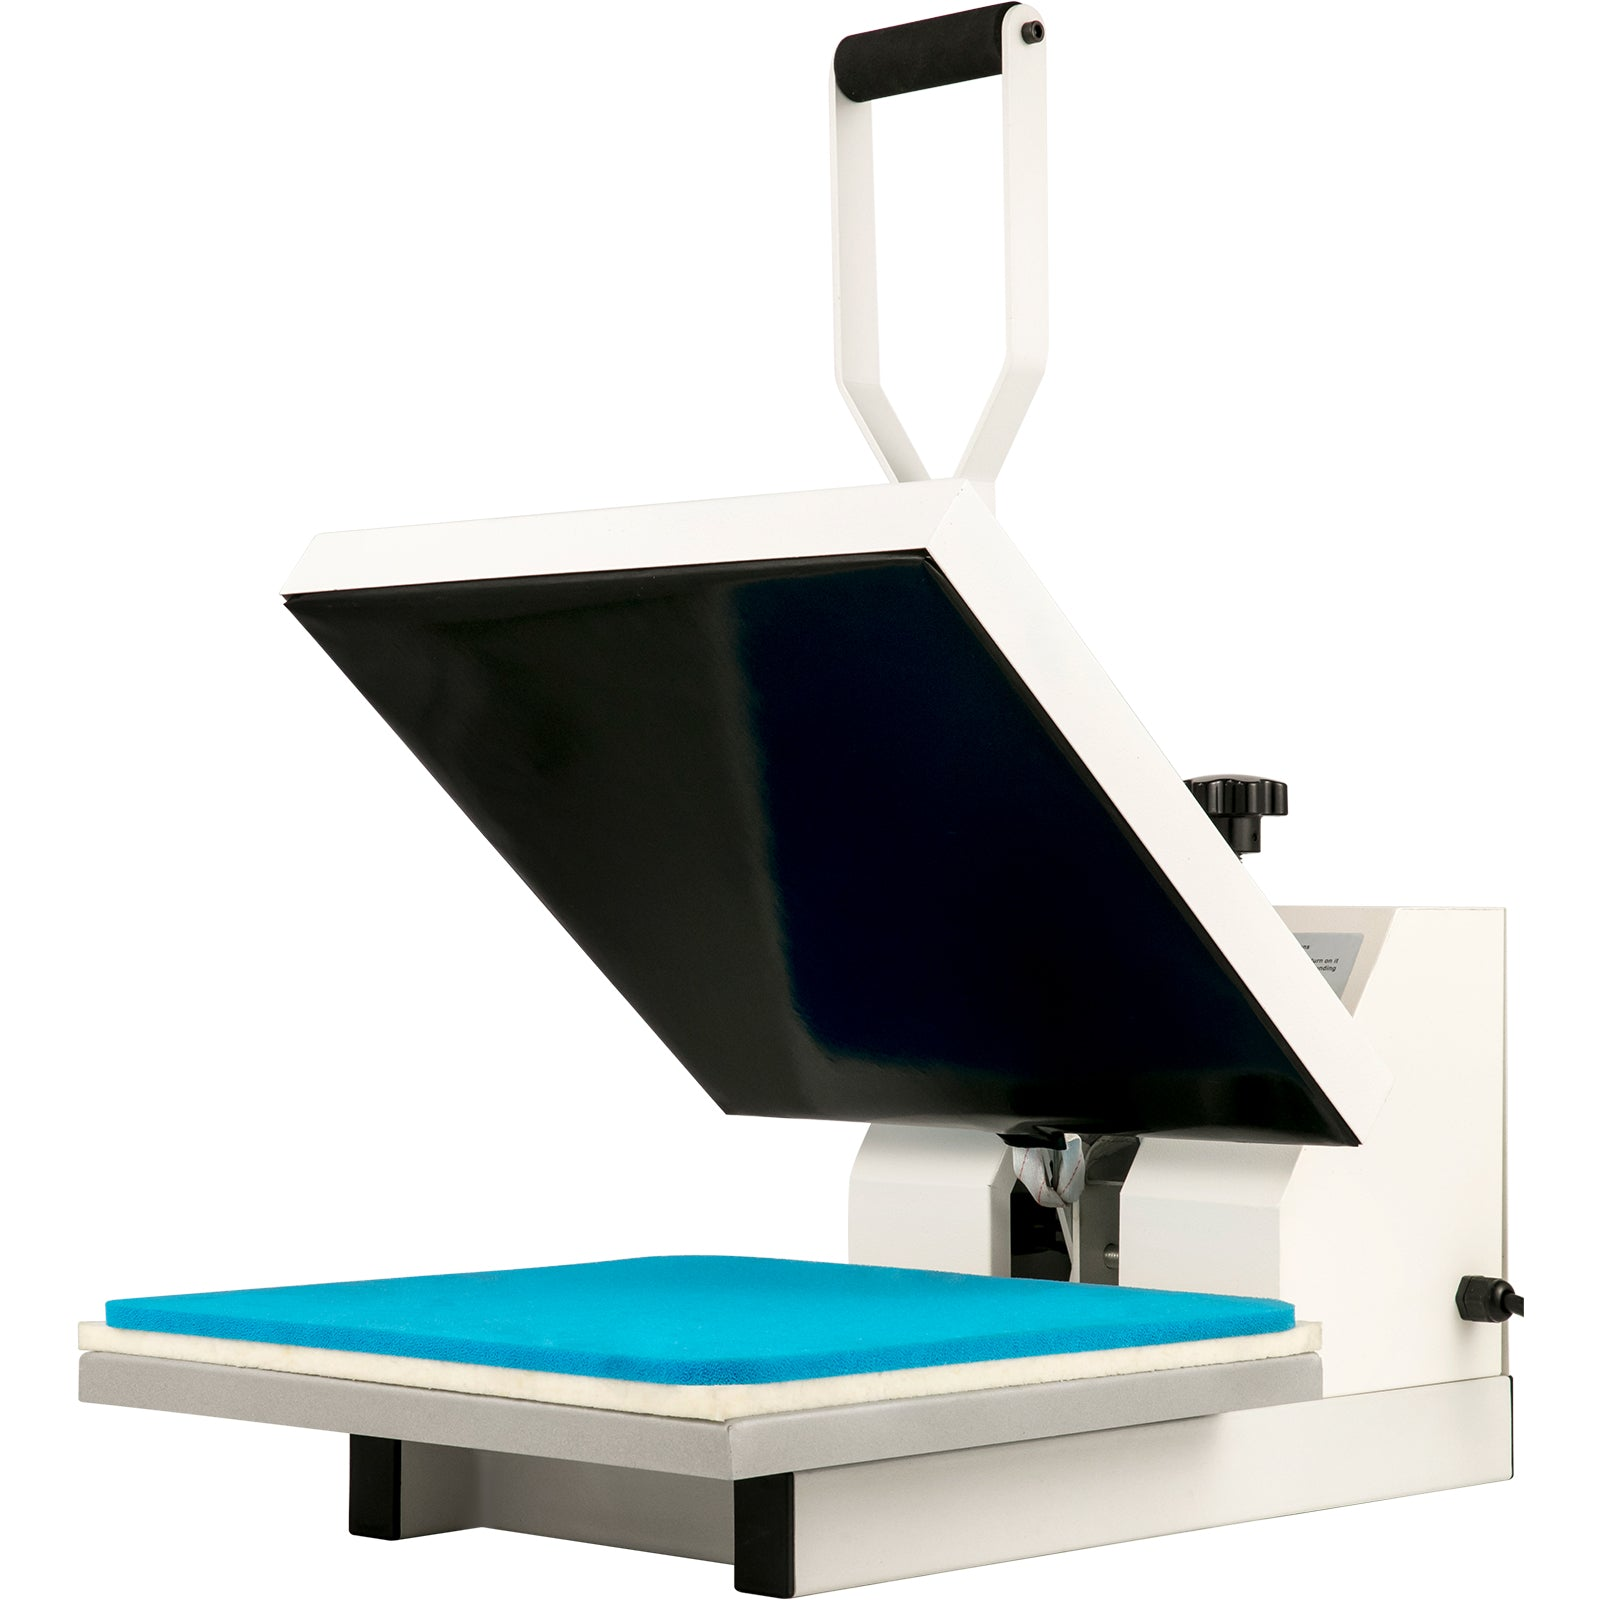 Heat Press Sublimation Machine 15 X 15 Inch White T-shirt Printing Machine Press